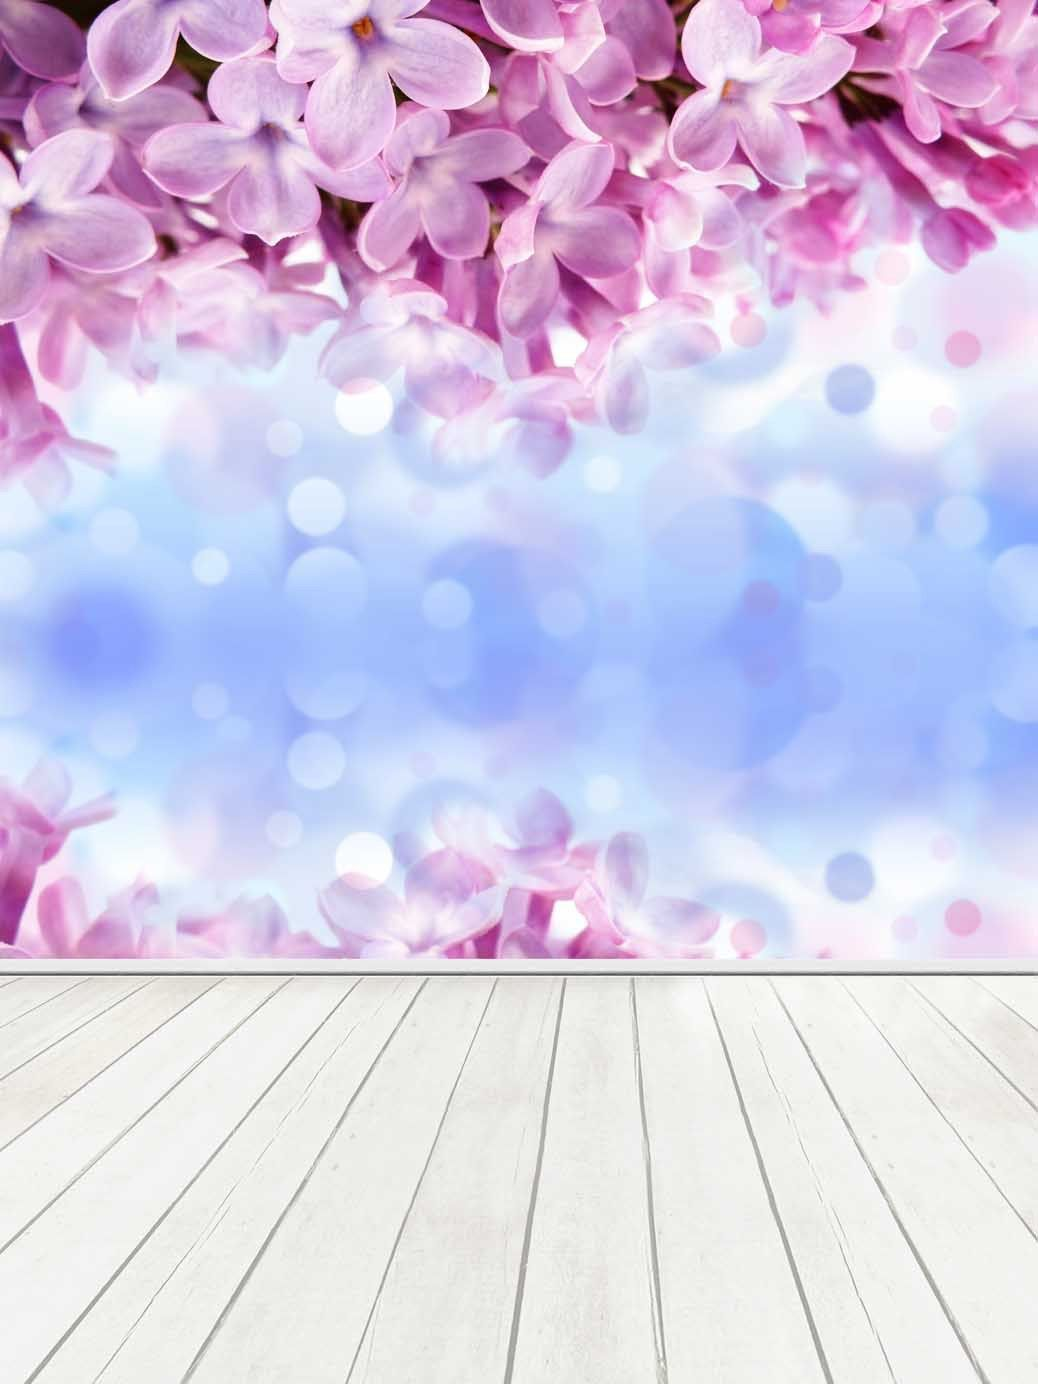 Find More Background Information about LIFE MAGIC BOX 10X20 Backdrop Photo  Shoot Background Vinilos Infantiles Pared